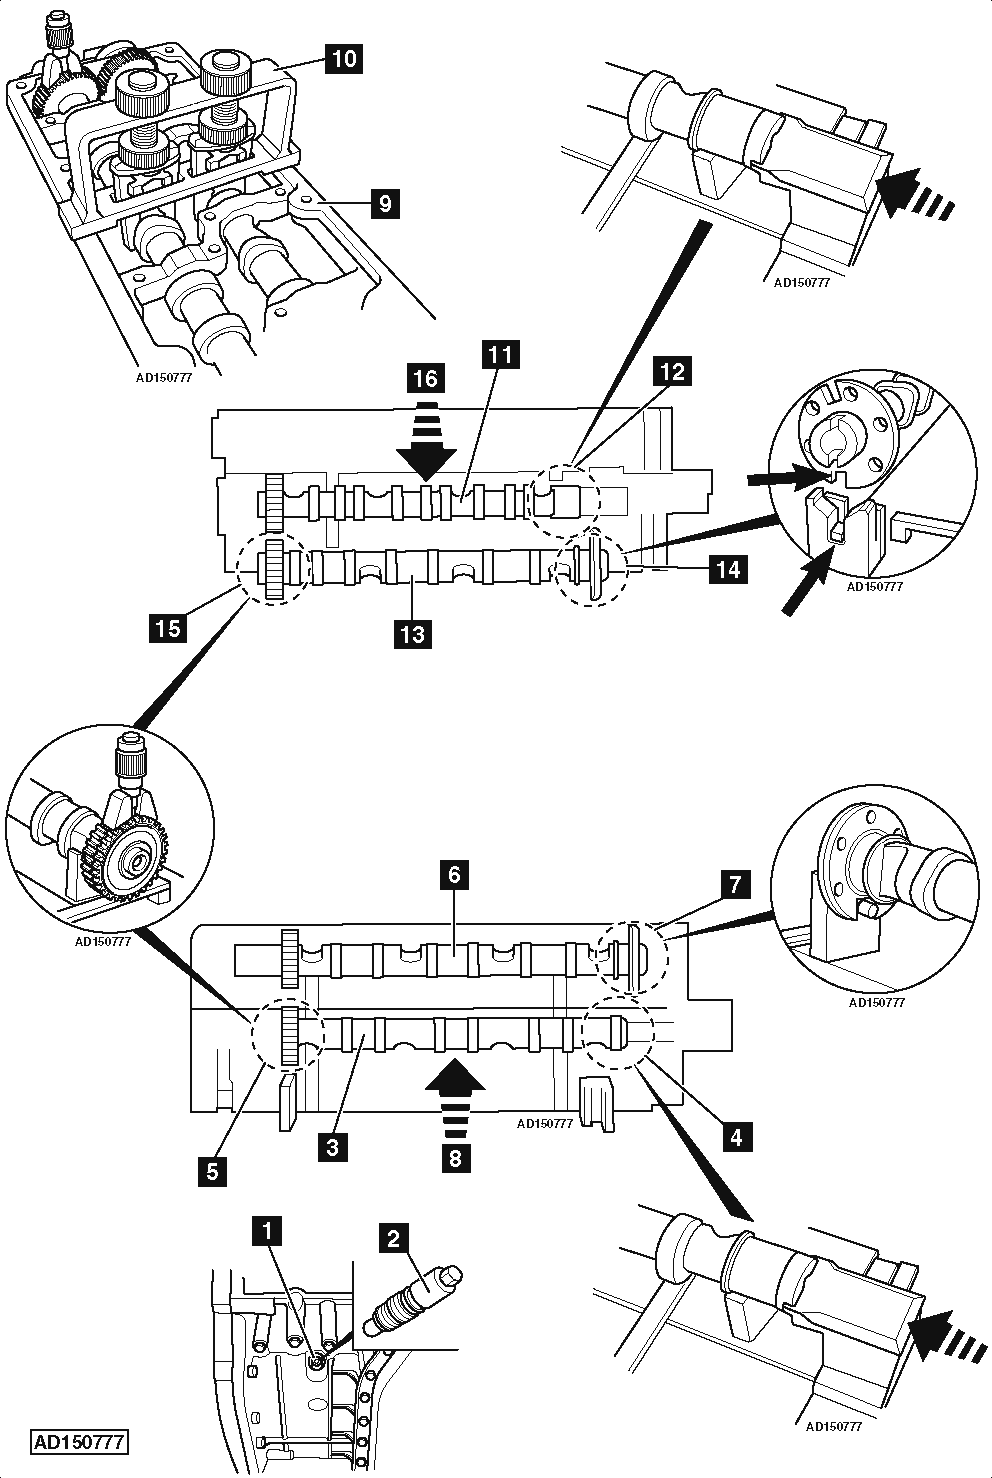 2002 taurus fan belt diagram together with 3 8 liter gm engine diagram likewise 2 7t